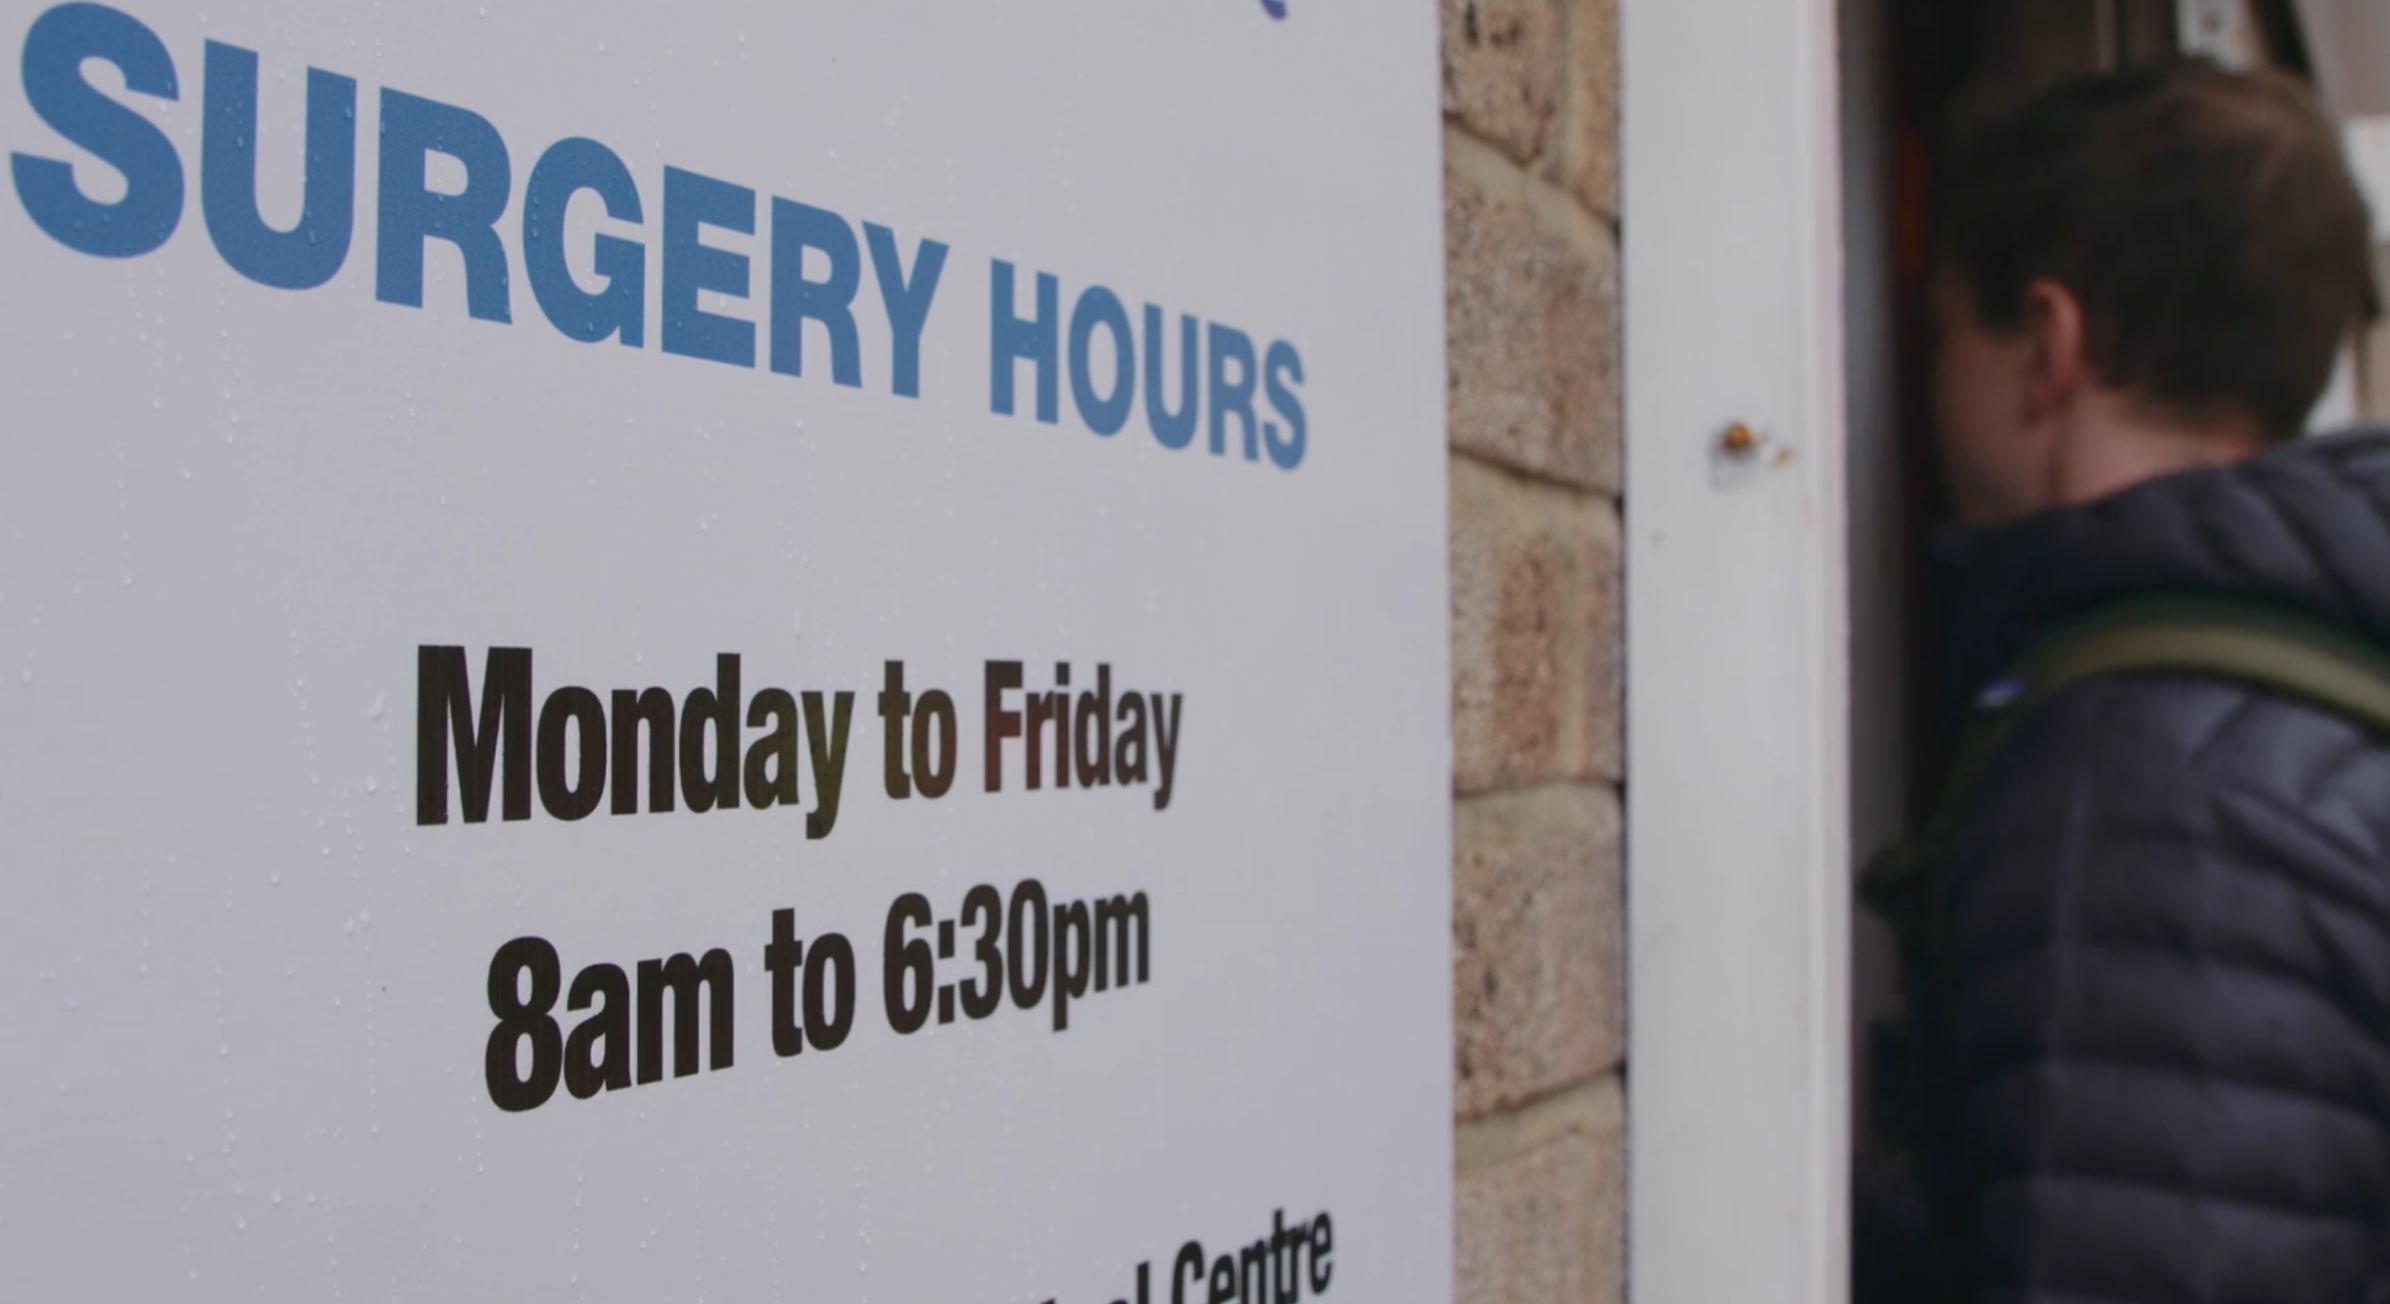 A GP practice with a sign showing its opening hours.